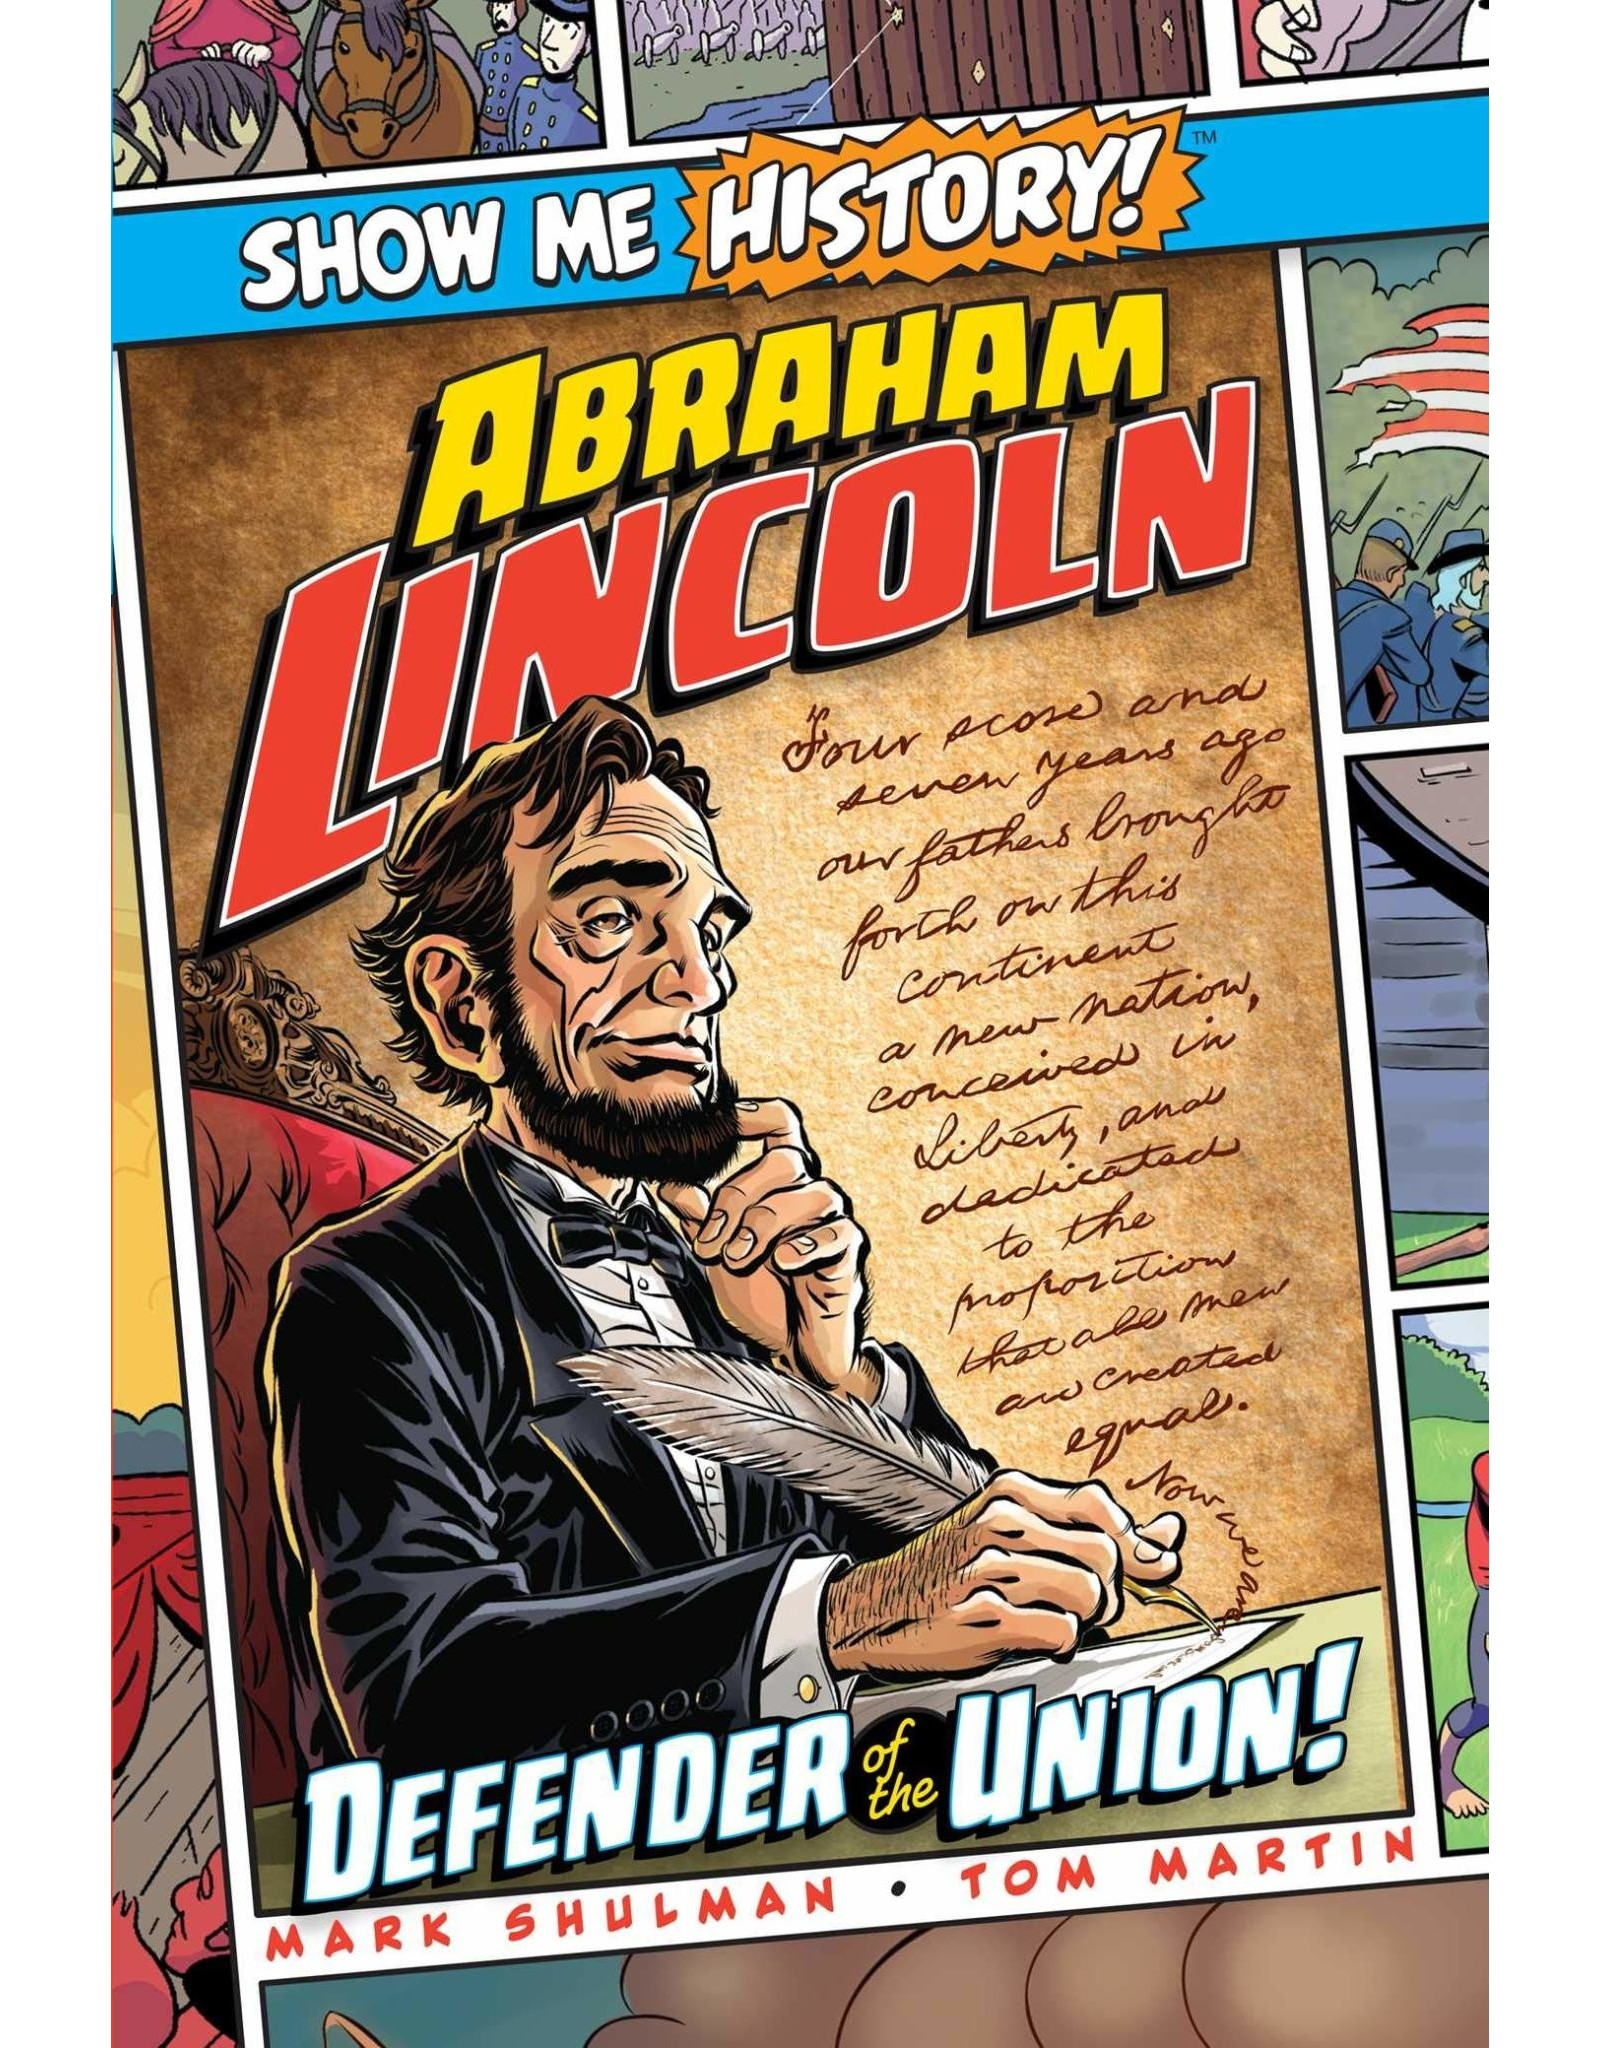 SHOW ME HISTORY GN ABRAHAM LINCOLN DEFENDER OF UNION